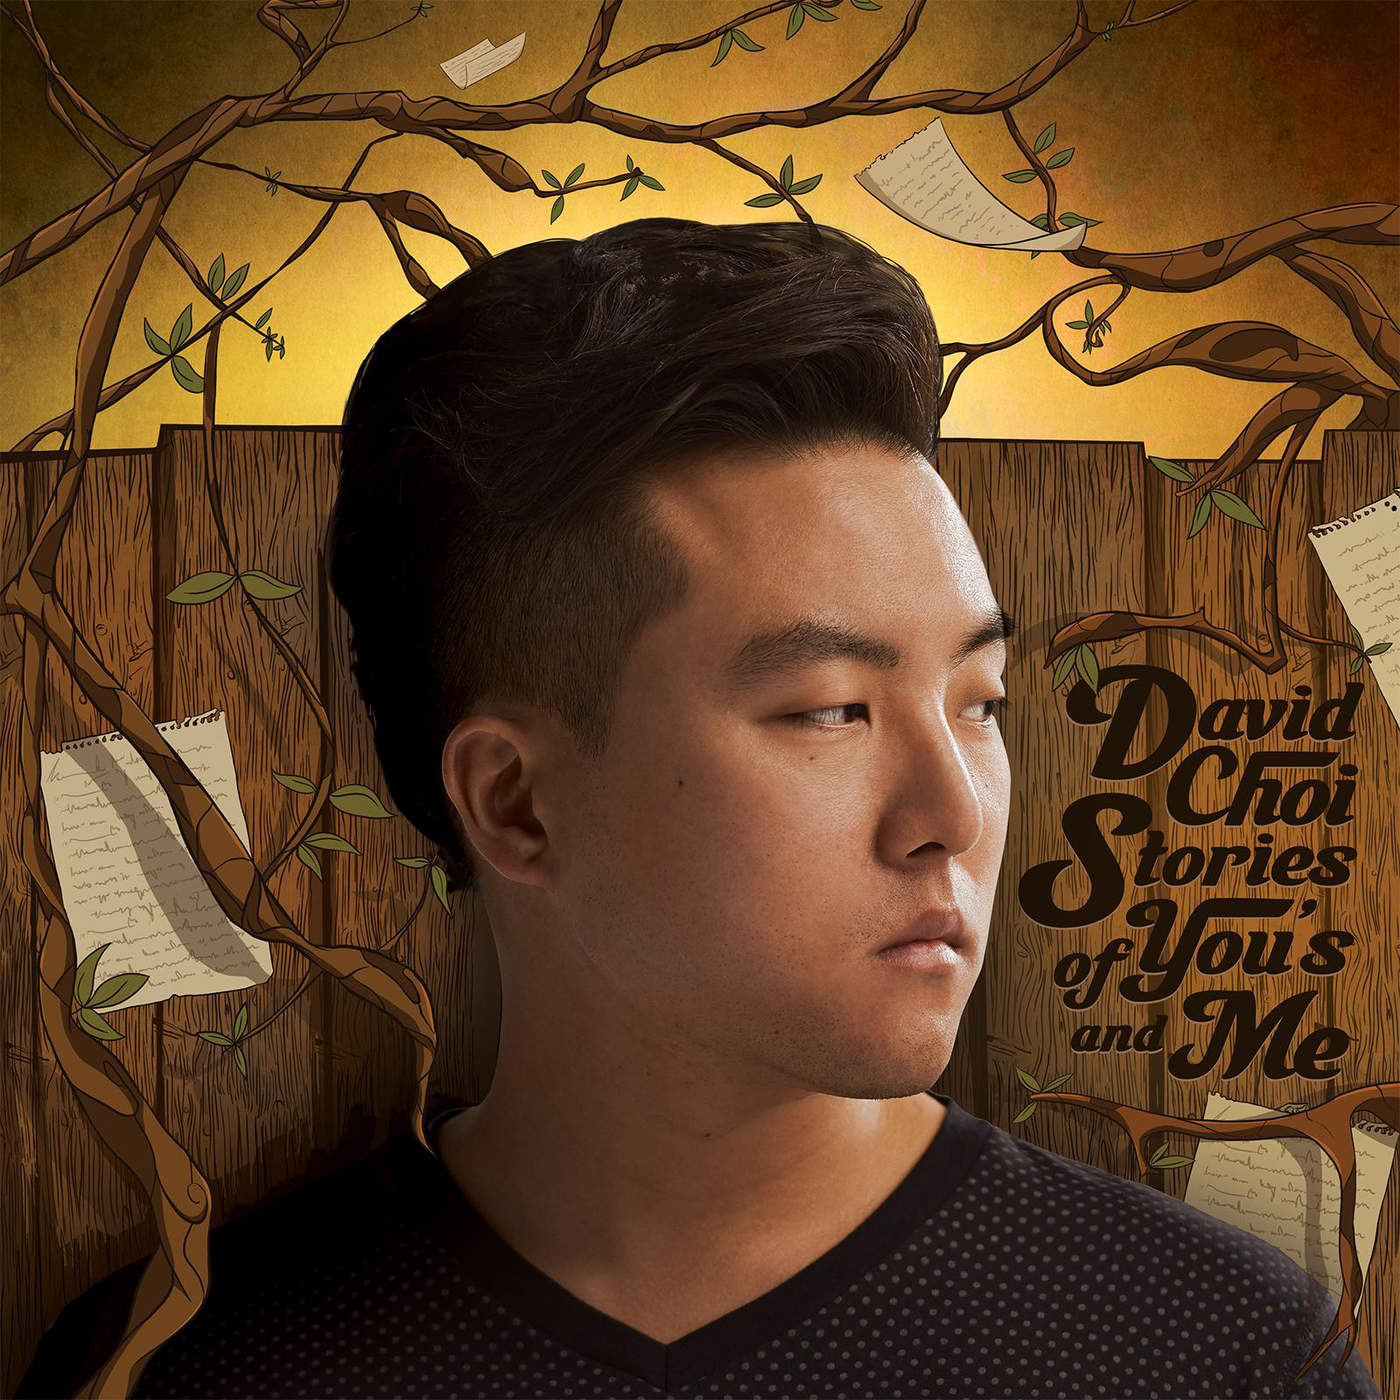 David Choi – Stories of You's and Me